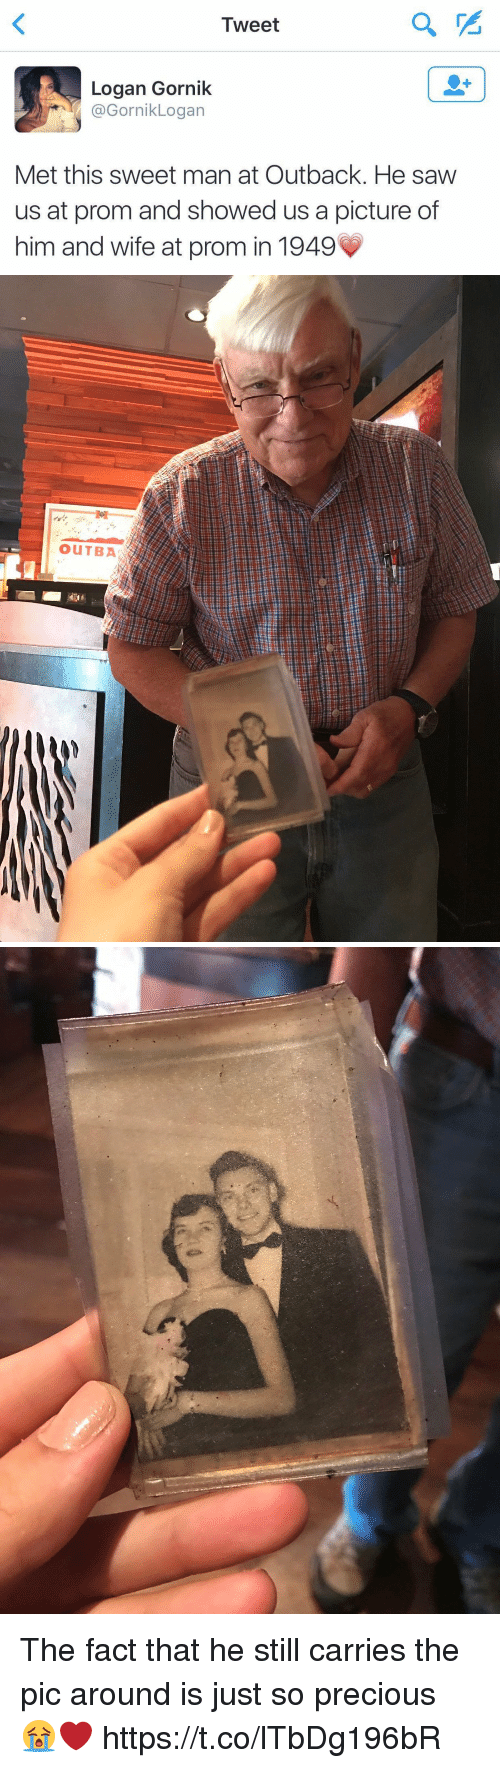 Precious, Saw, and Outback: Tweet  Logan Gornik  @Gornik Logan  Met this sweet man at Outback. He saw  us at prom and showed us a picture of  him and wife at prom in 1949   OuTBA The fact that he still carries the pic around is just so precious 😭❤️ https://t.co/lTbDg196bR